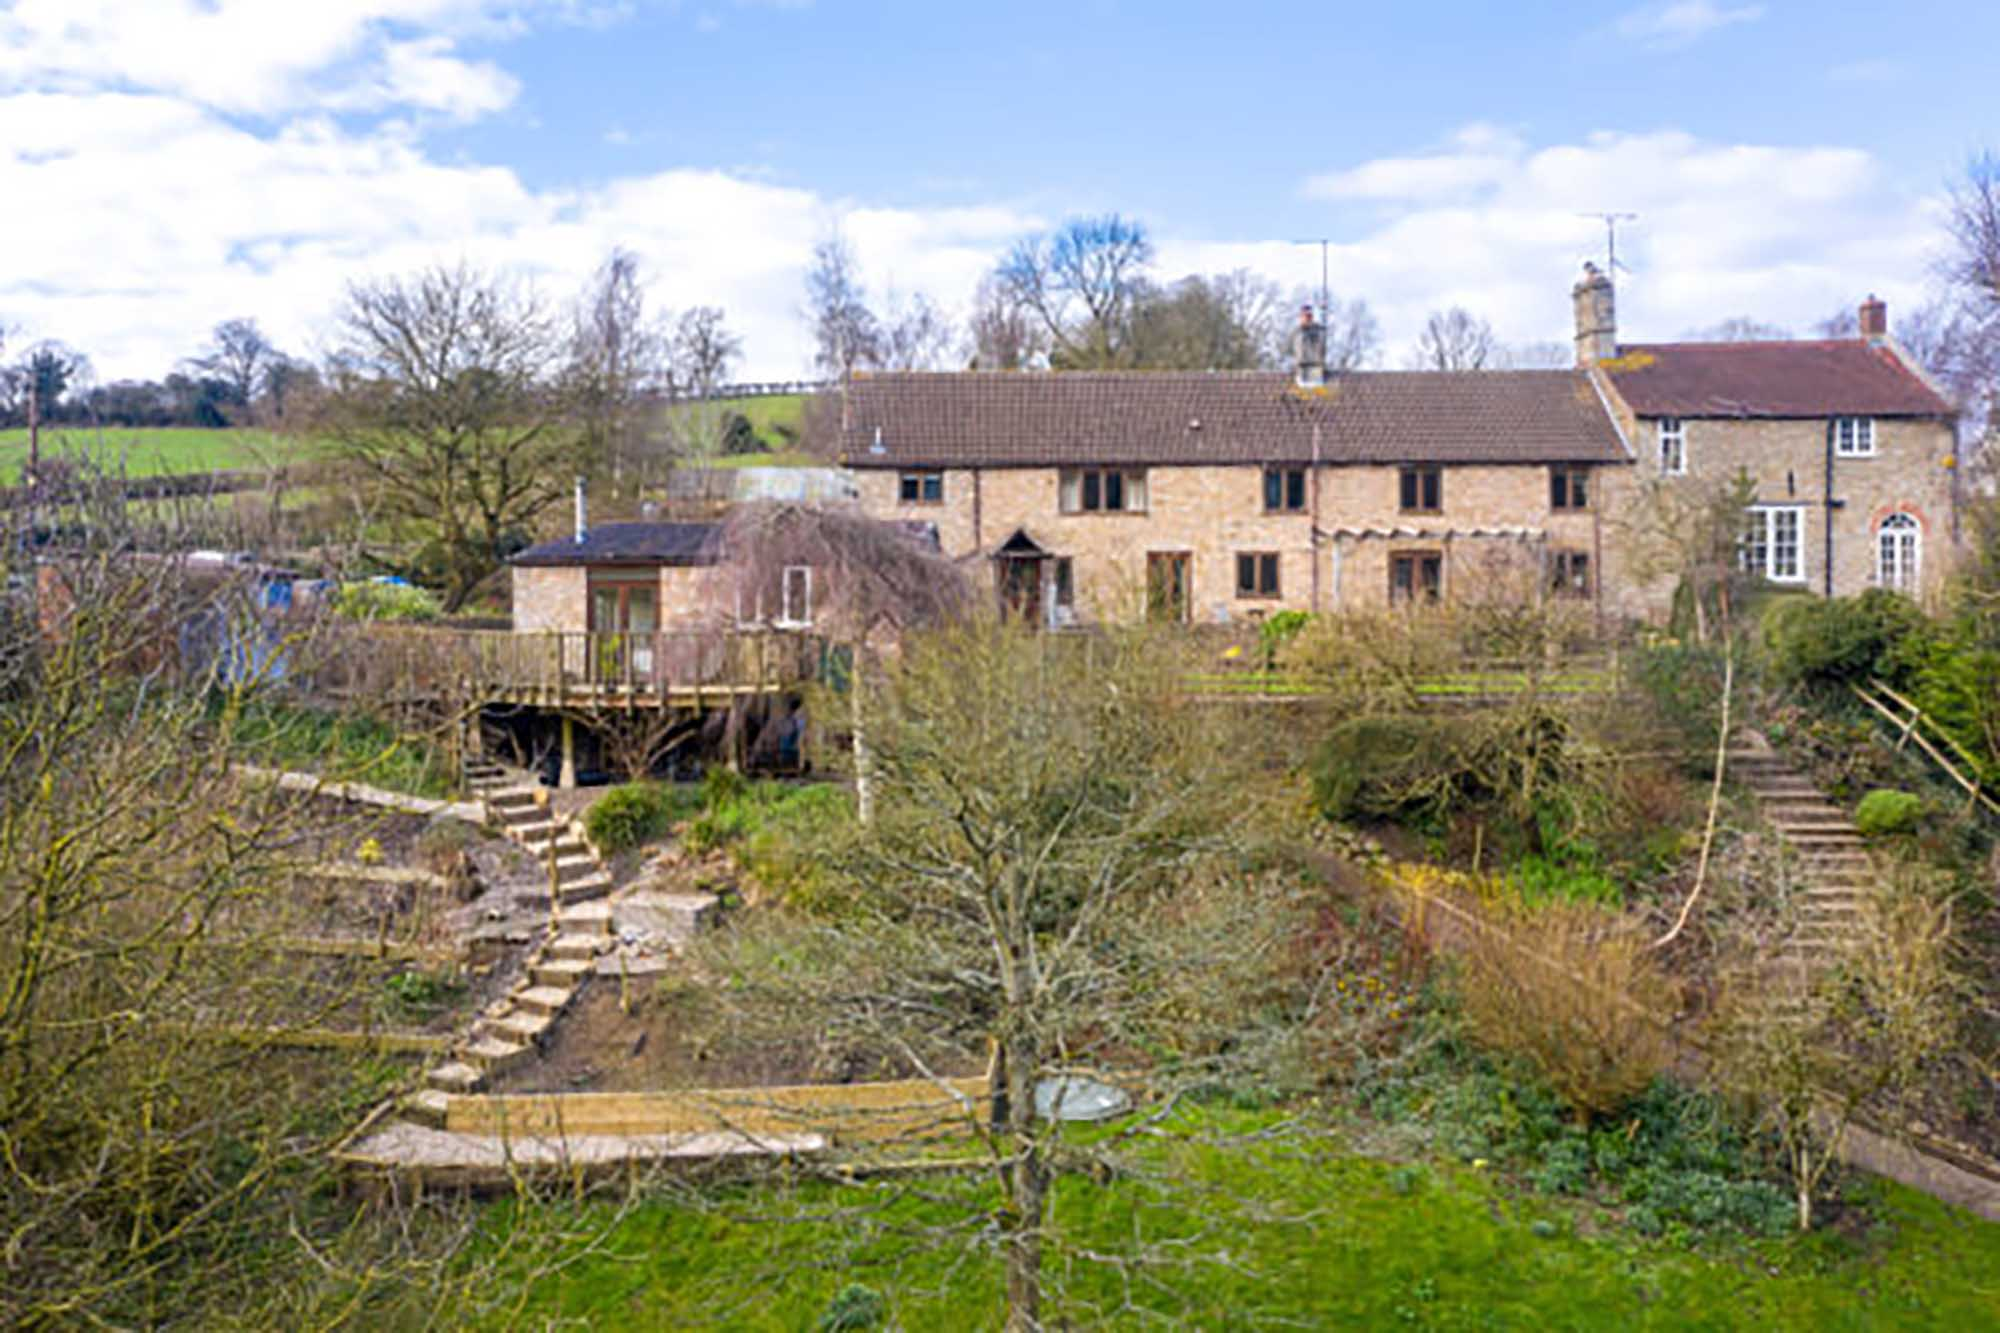 Batcombe, Farmhouse with views and Annexe